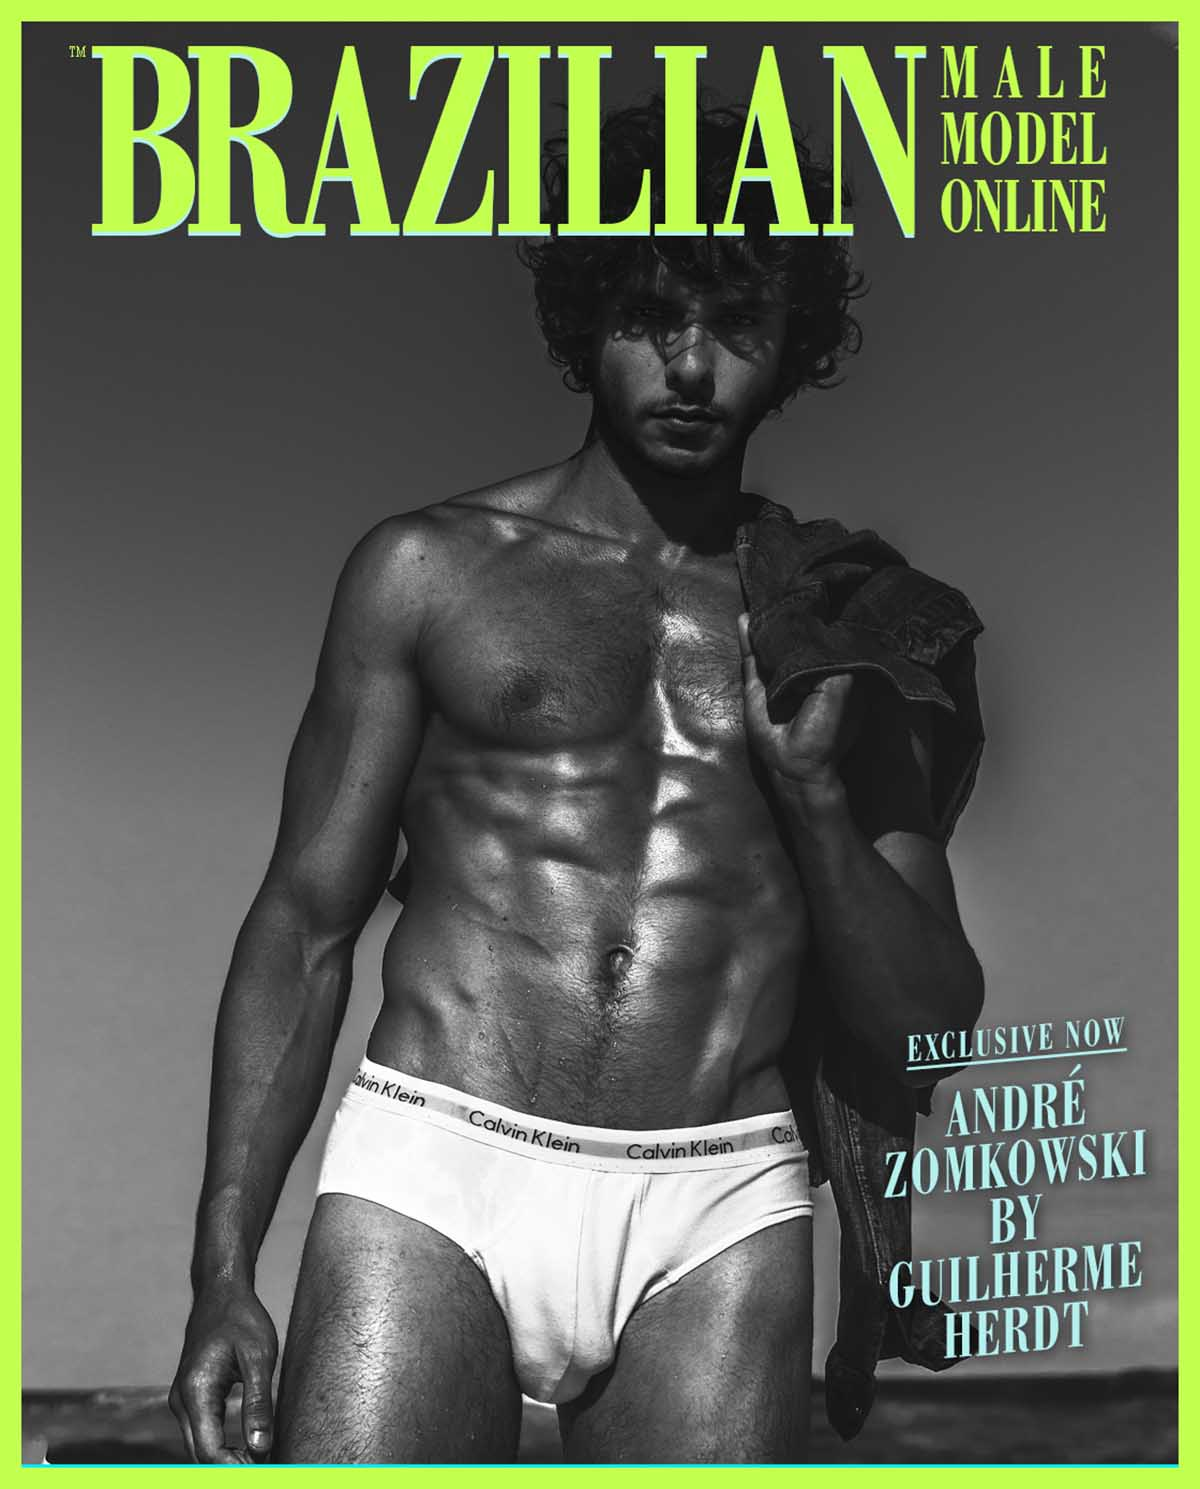 André Zomkowski X Guilherme Herd X Brazilian Male Model X YUP MAGAZINE